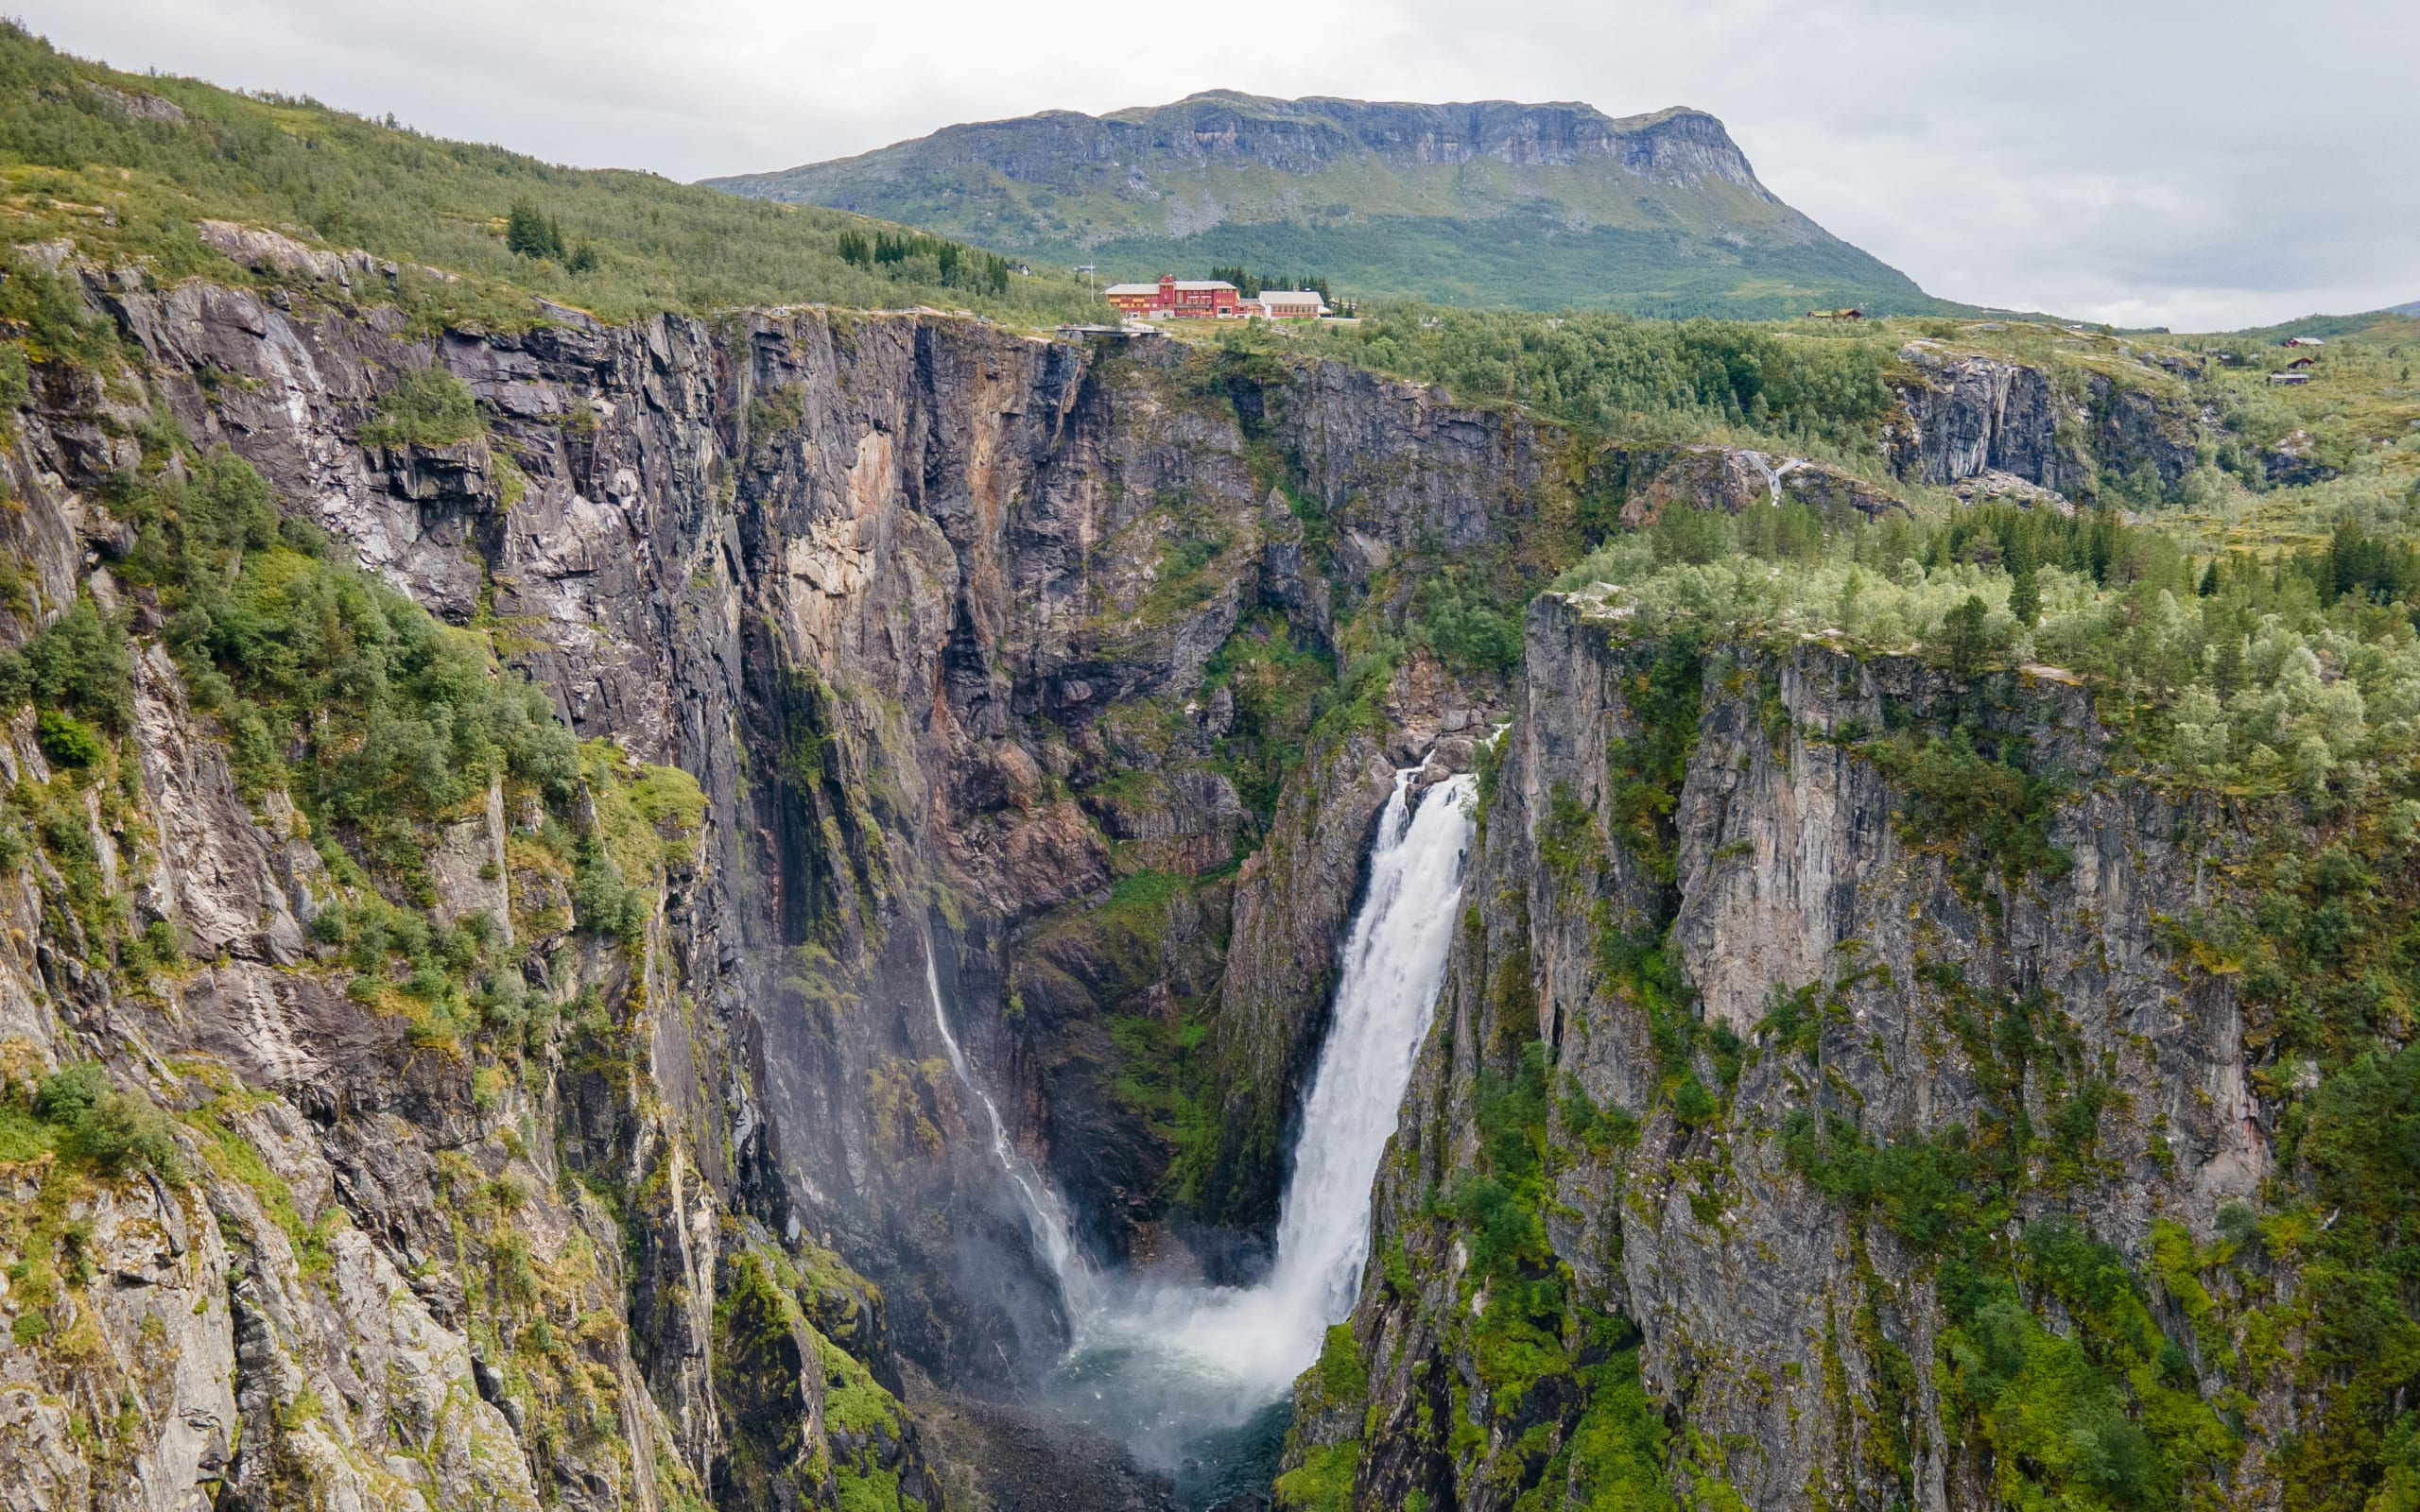 Panorama view of Vøringsfossen waterfall